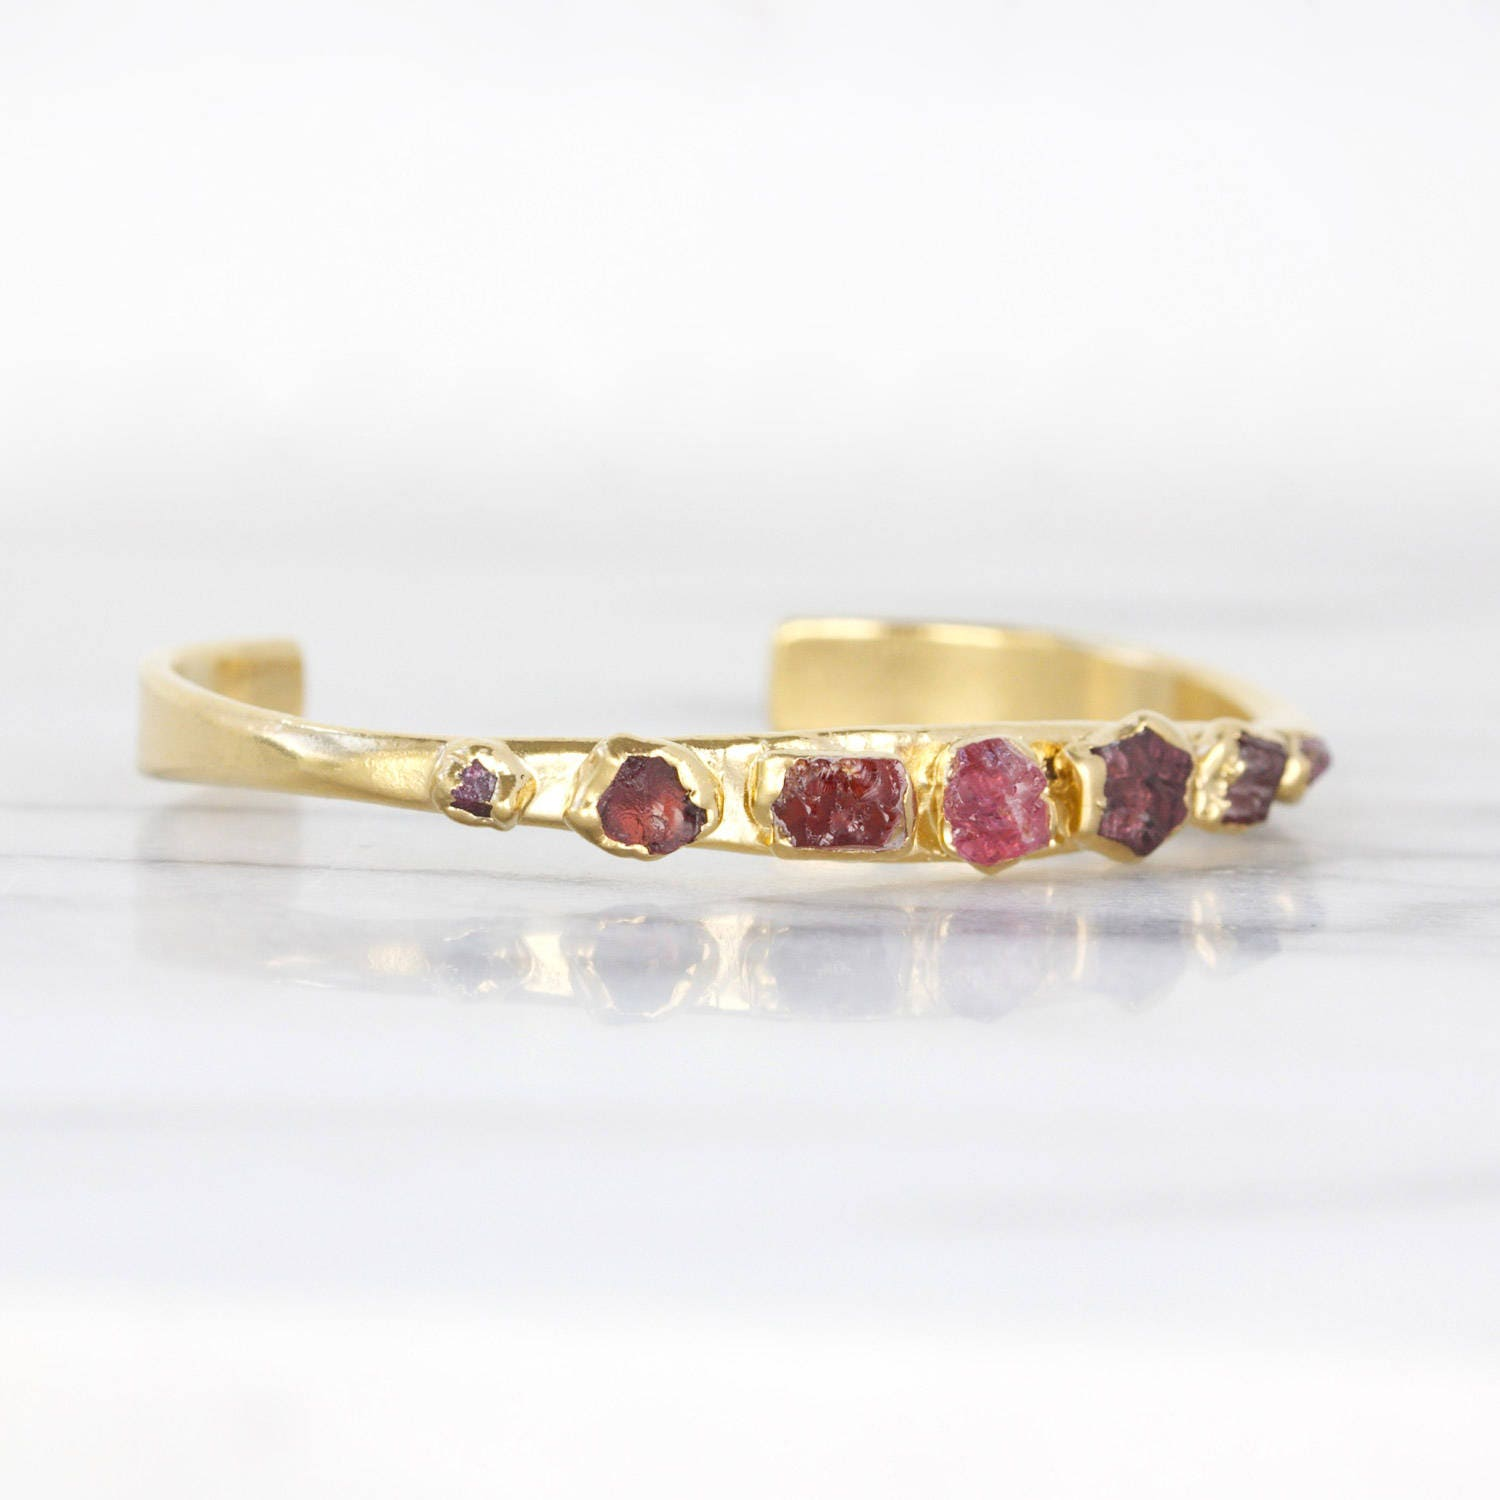 heyman antiques and rau jewelry ruby oscar bracelet real s m diamond